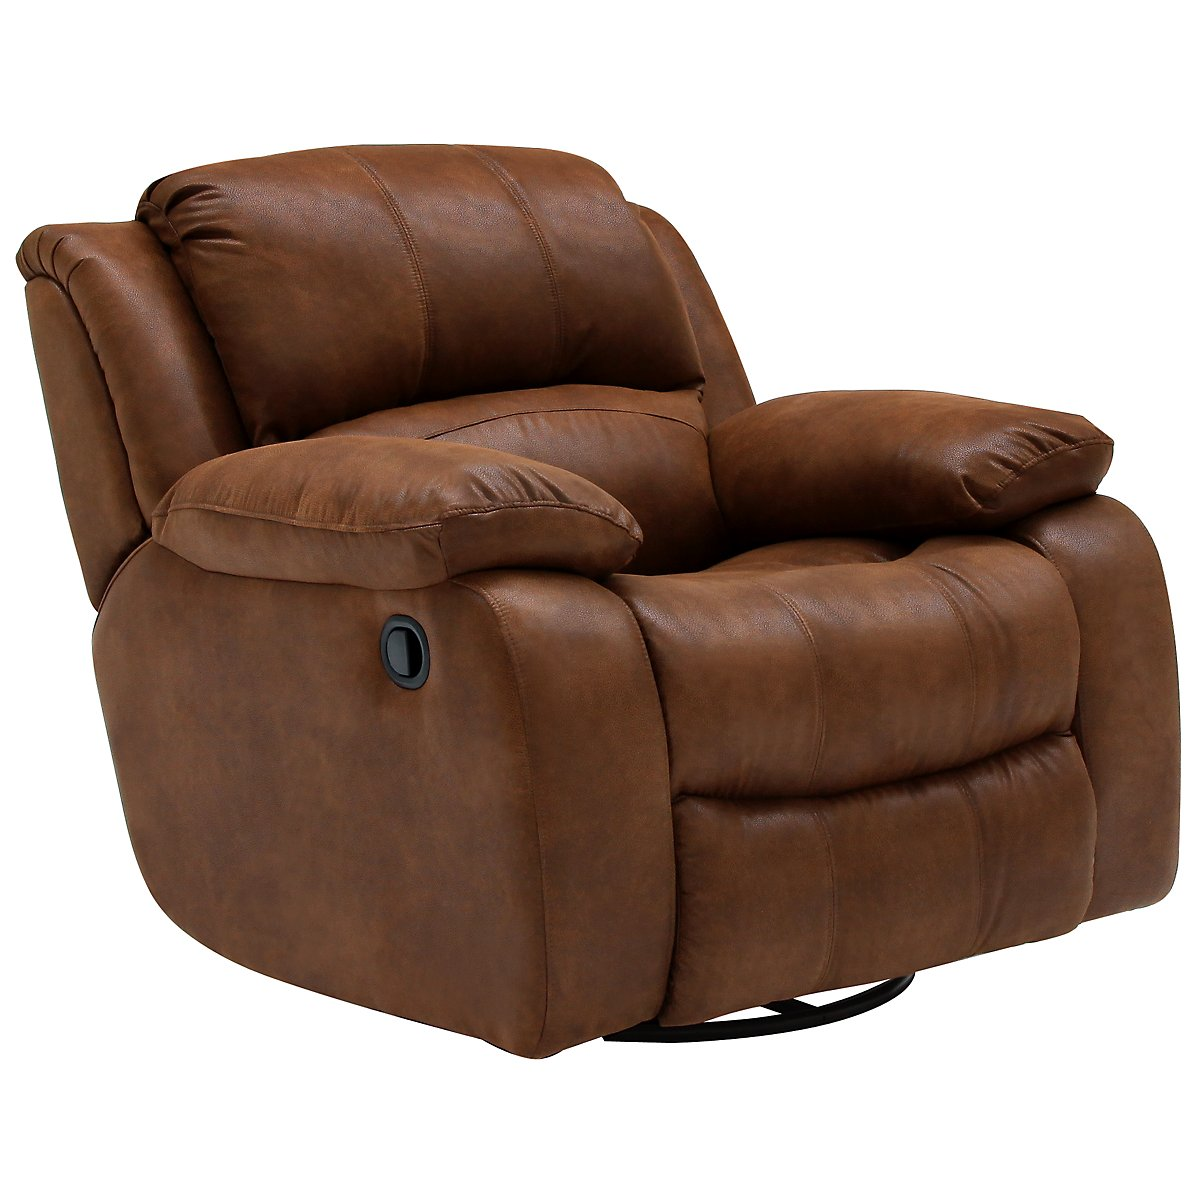 Tyler2 Md Brown Microfiber Power Recliner